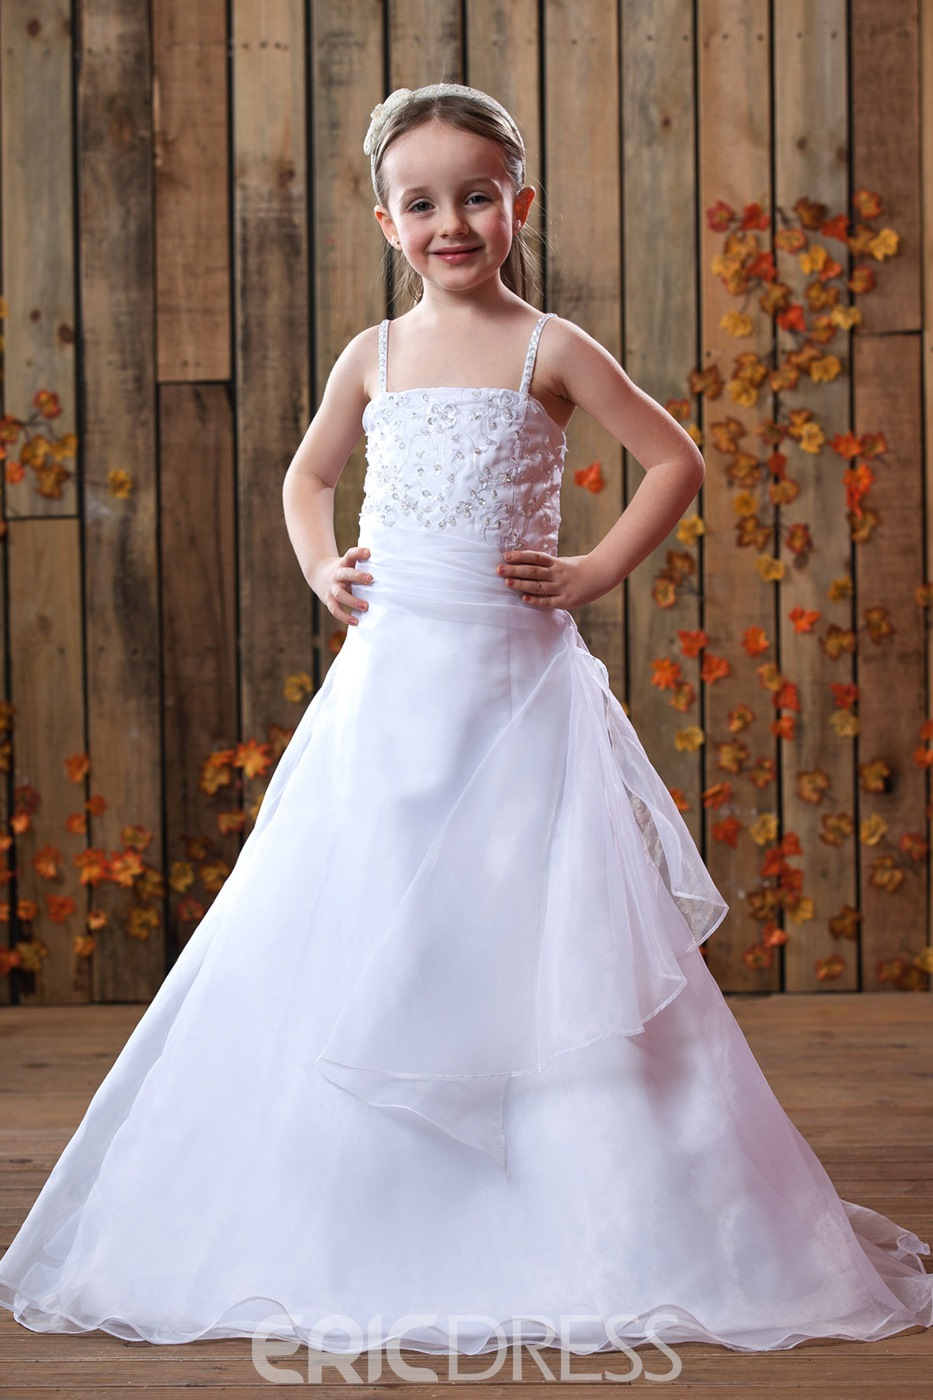 d985cd8688 A-Line Spaghetti Straps Floor-Length Satin Flower Girls Dress ...